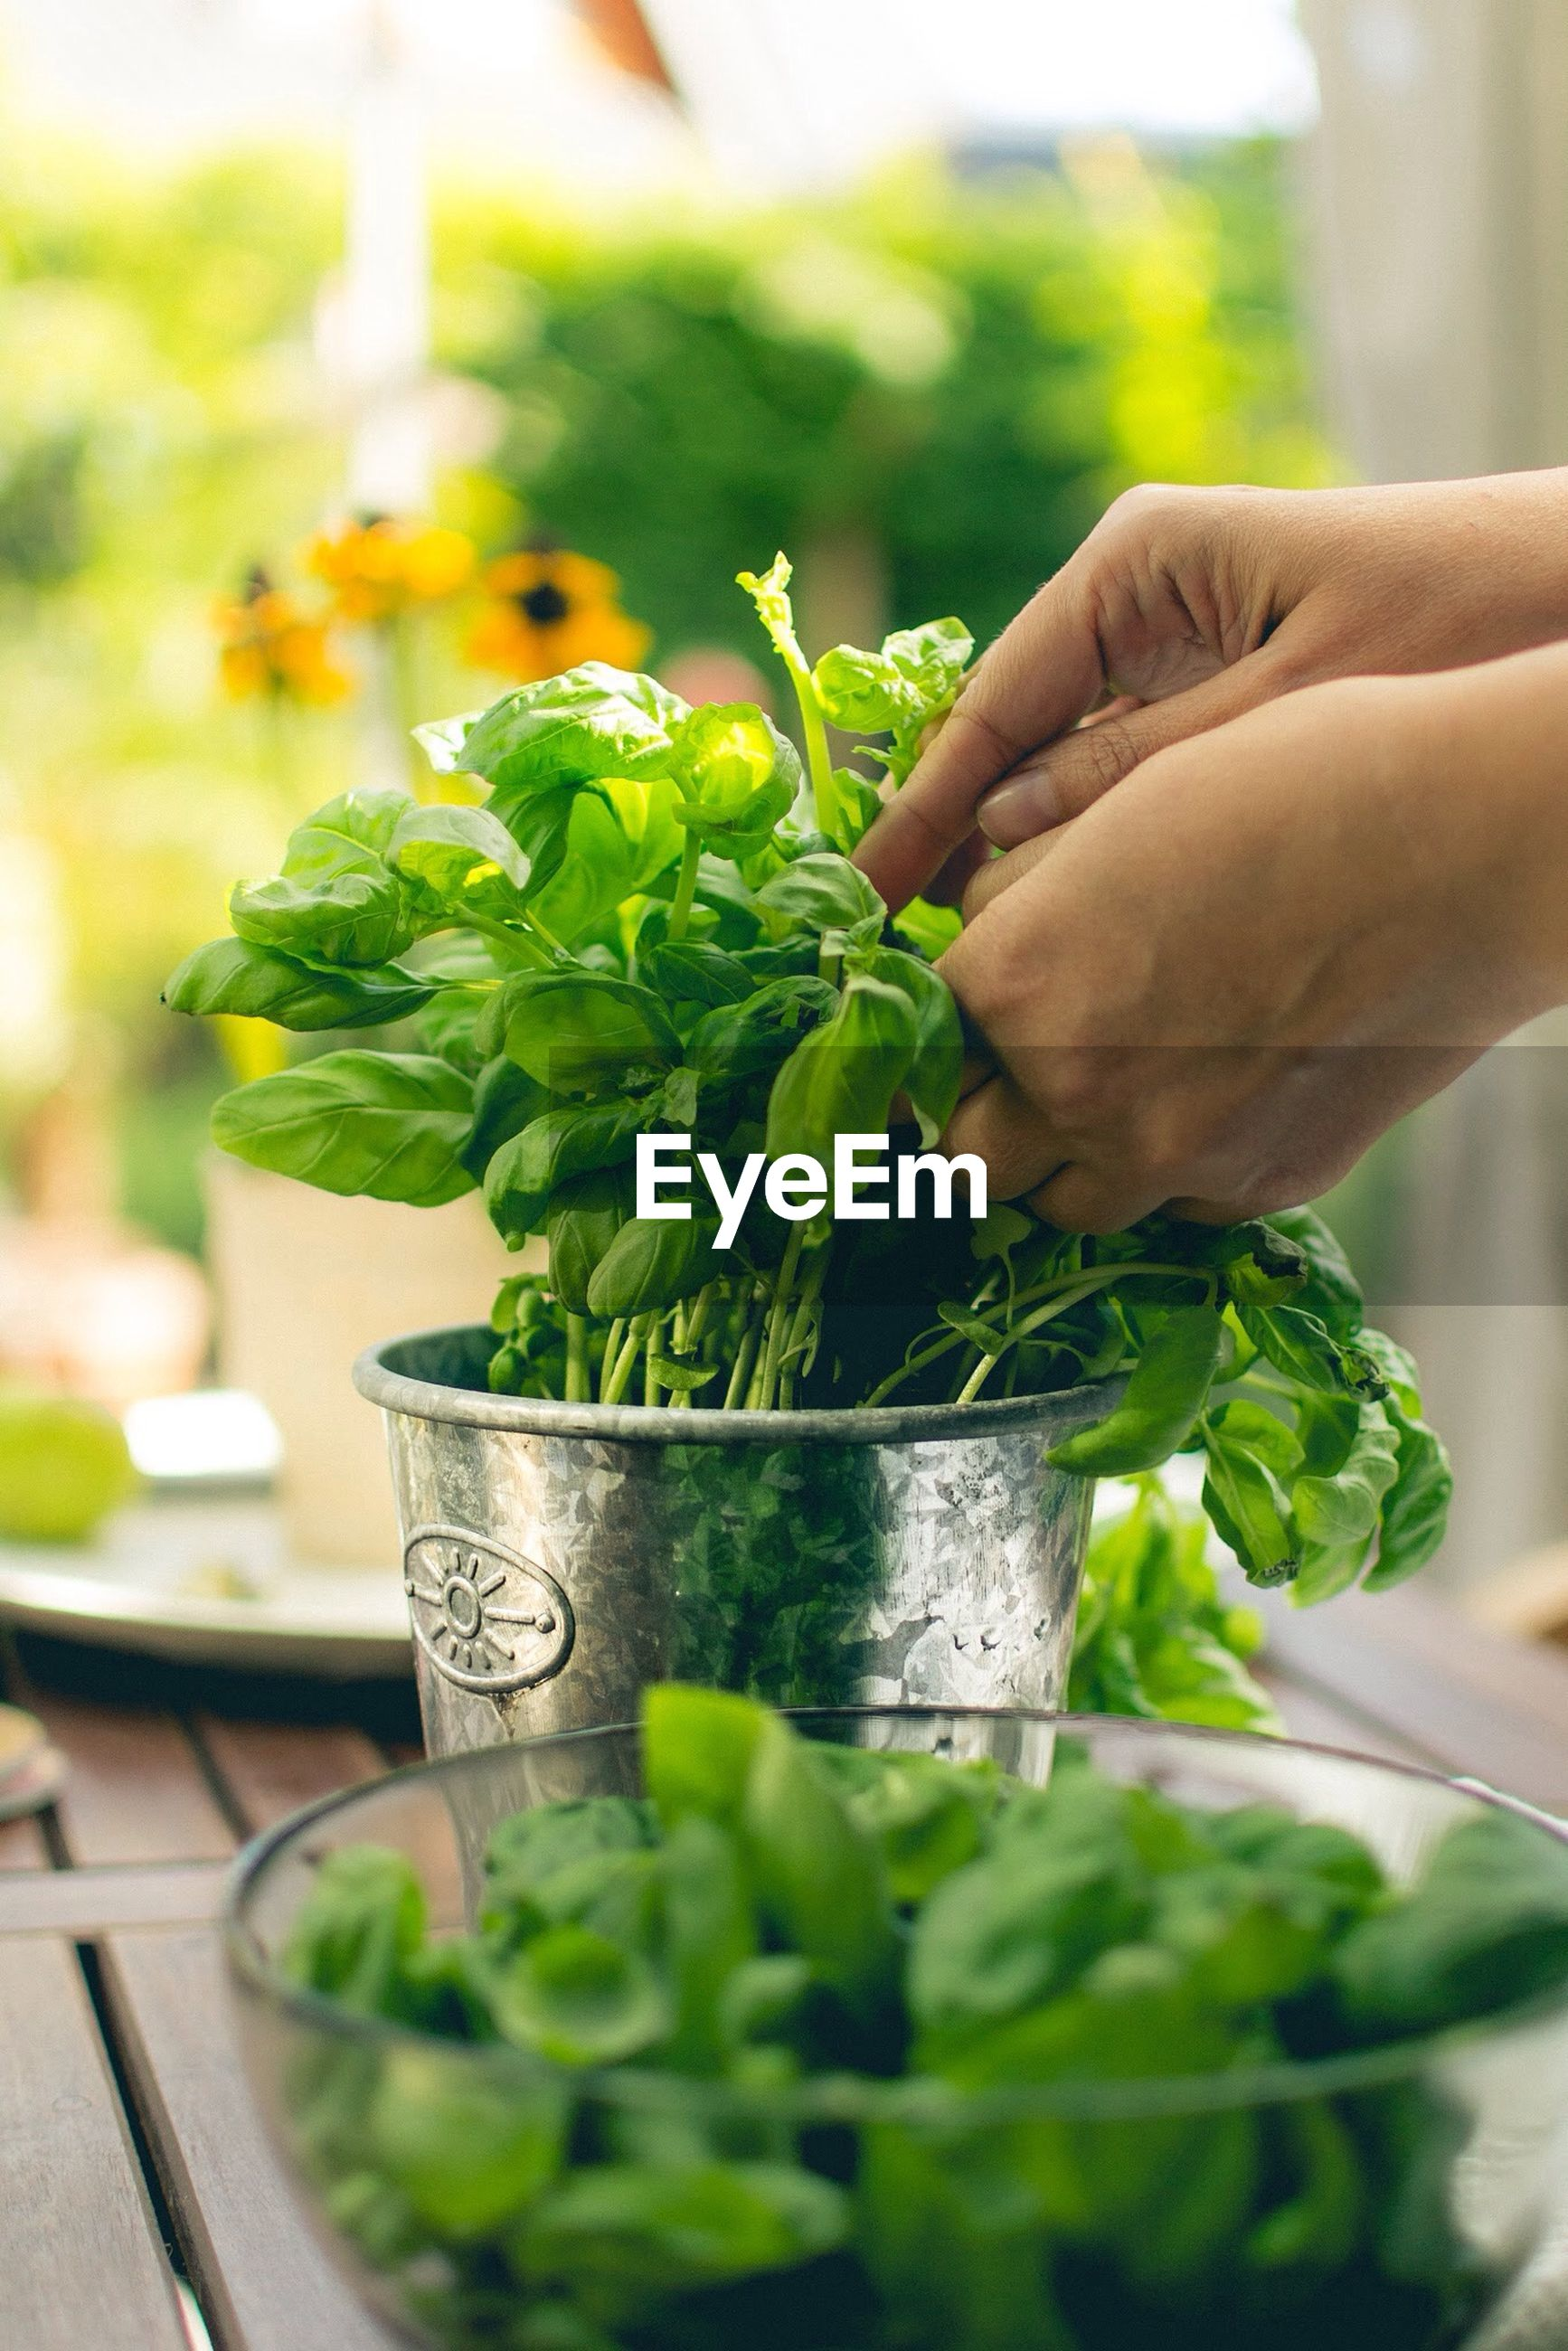 Cropped image on woman holding leafy vegetable in kitchen